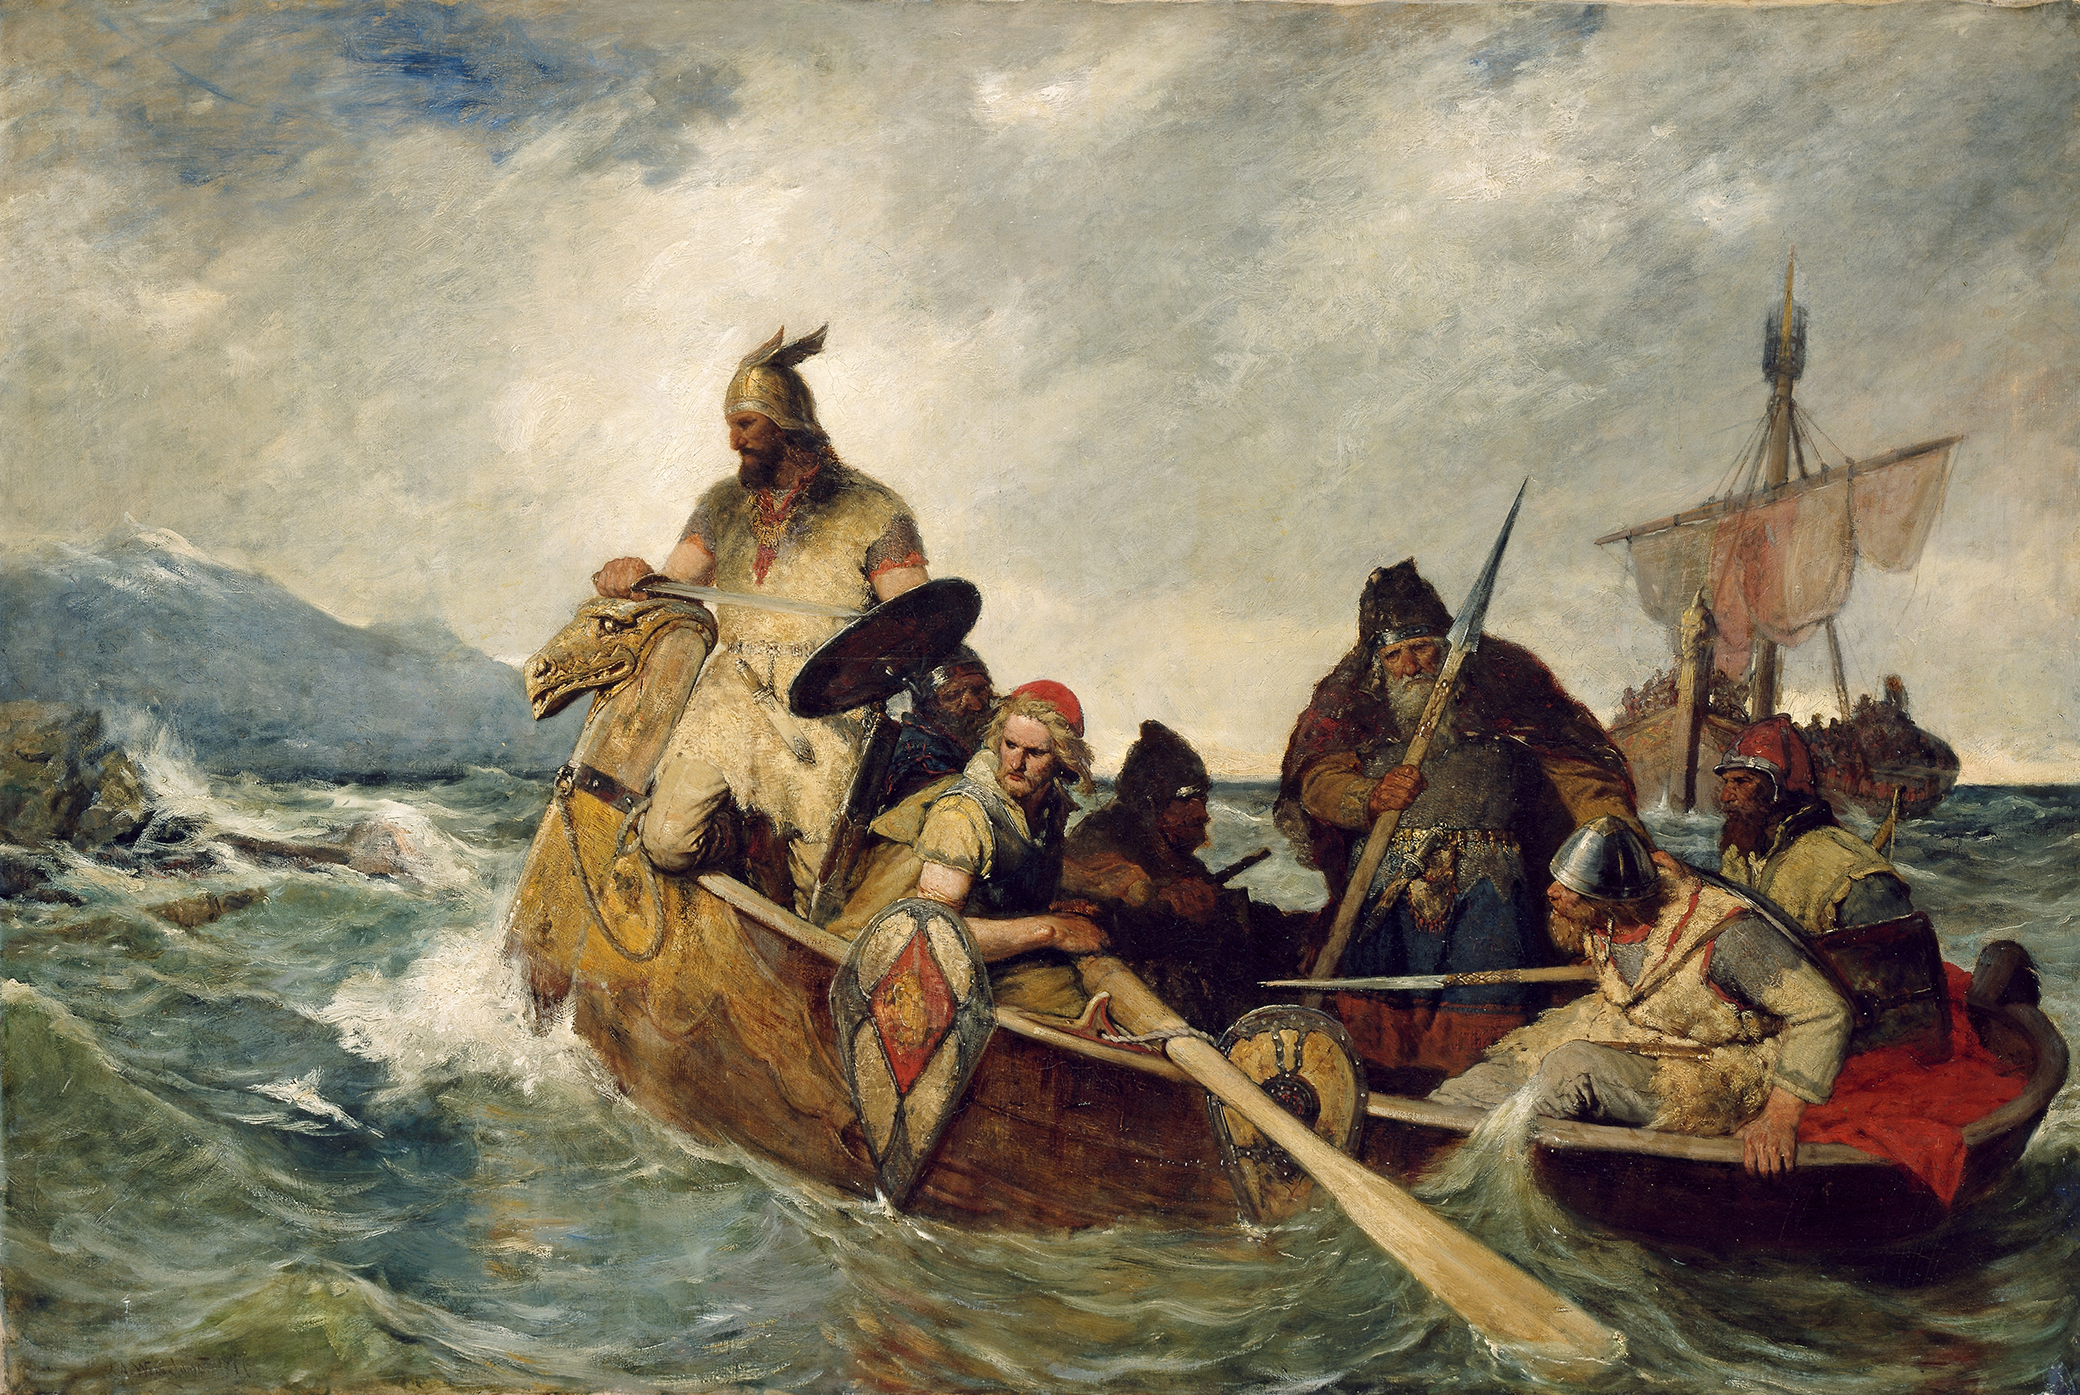 Norwegians Land in Iceland in 872, by Oscar Wergeland, 1877. National Gallery of Norway, The Fine Arts Collections.